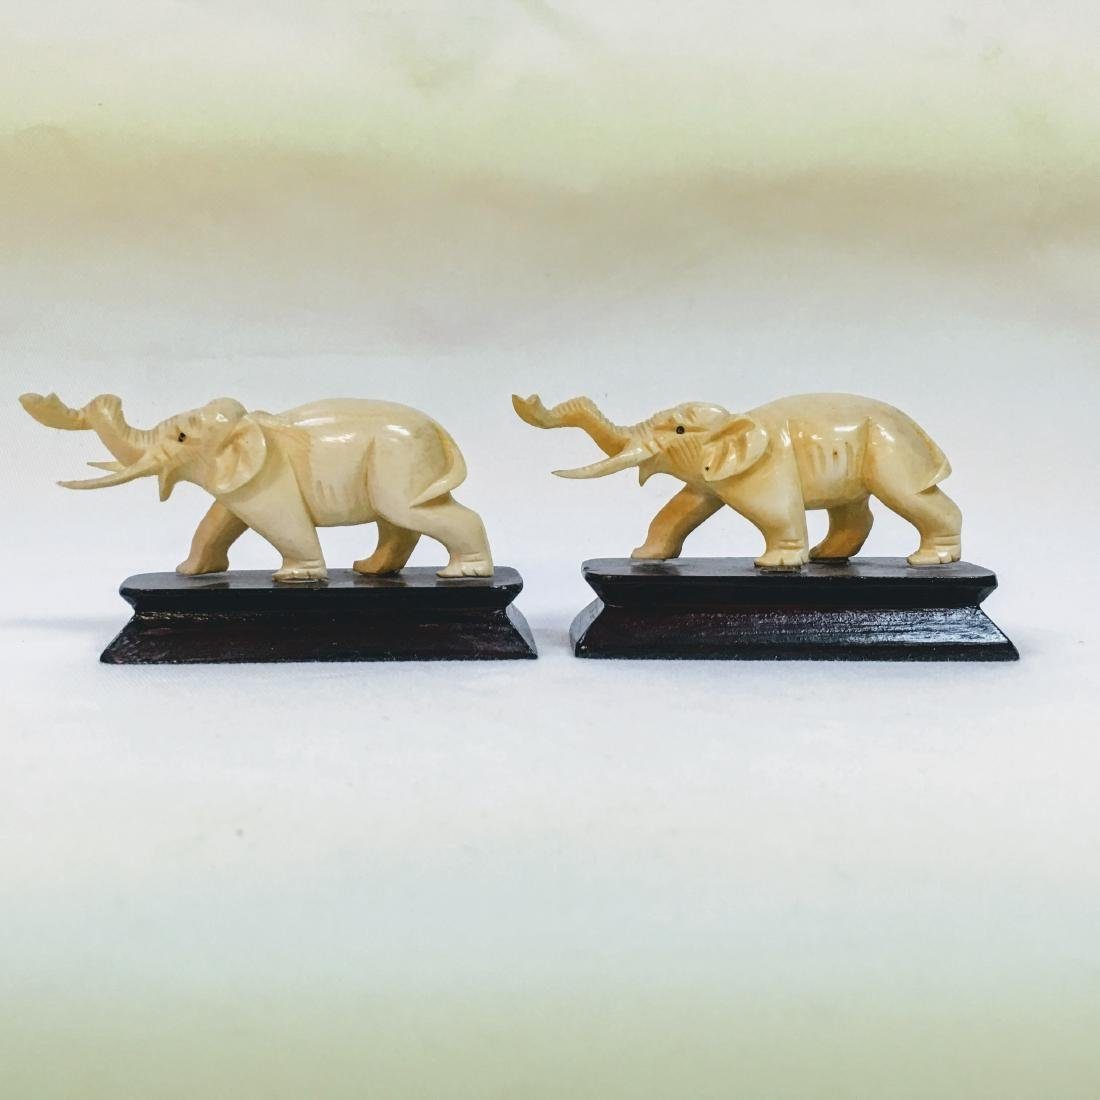 Vintage pair of Hand carved elephants on bases